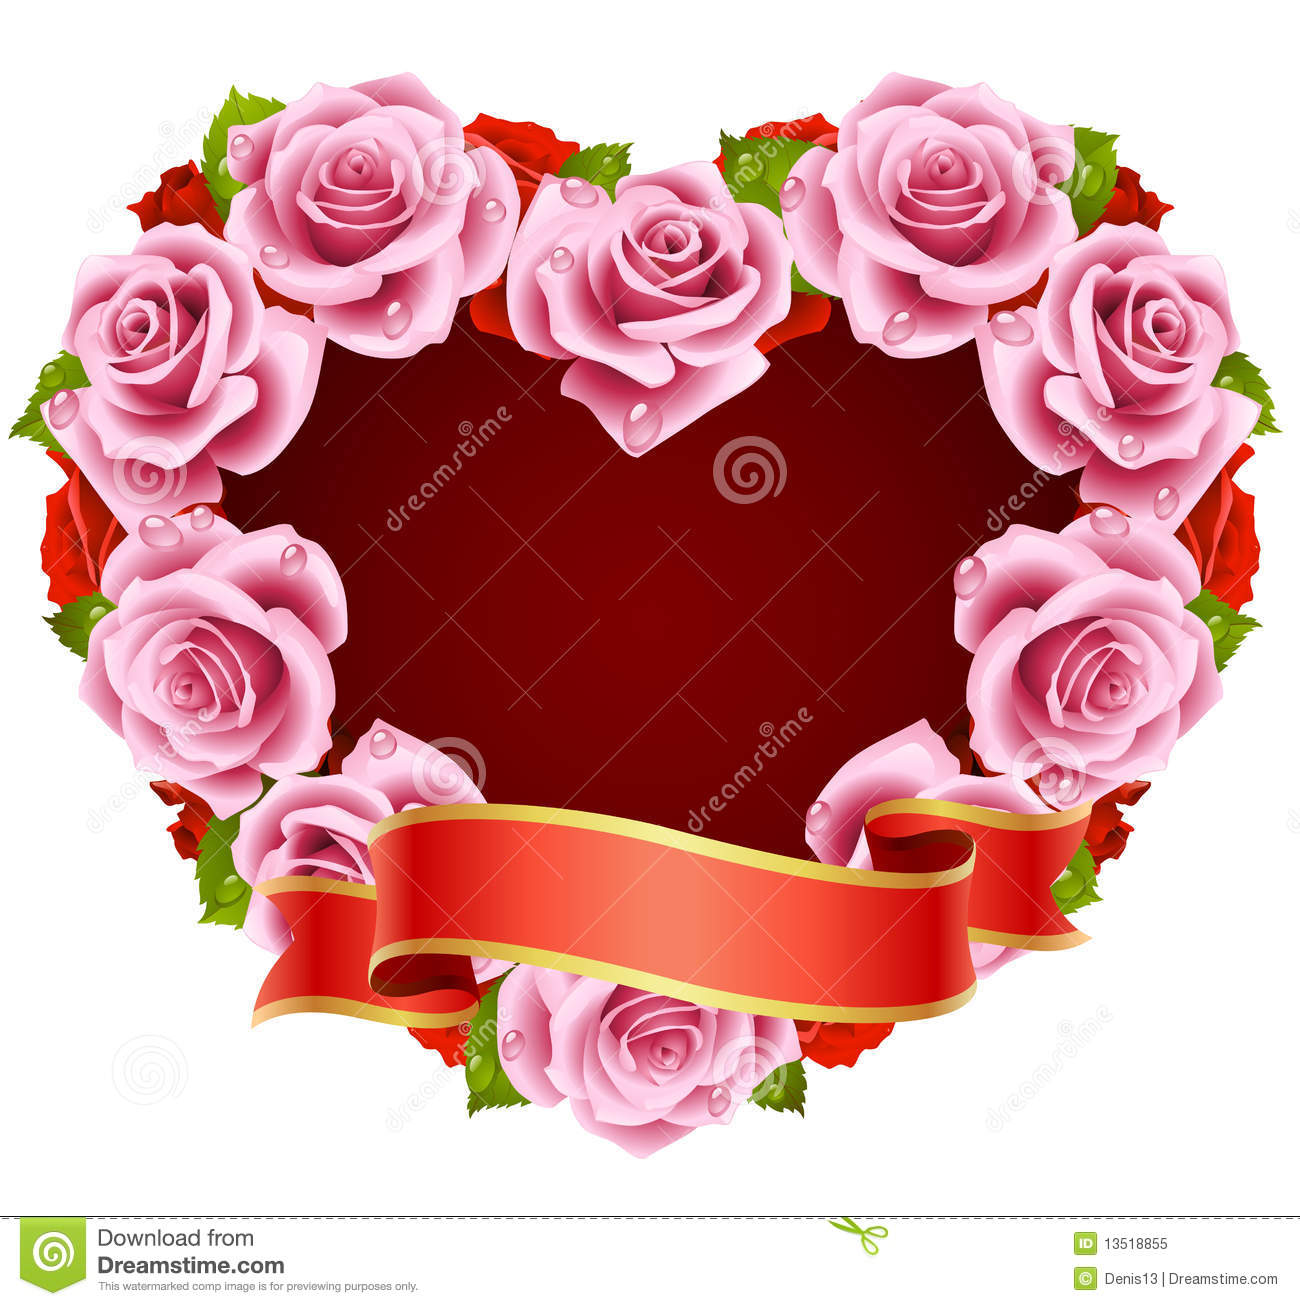 Pink roses and hearts wallpapers gallery - Pink roses and hearts wallpaper ...